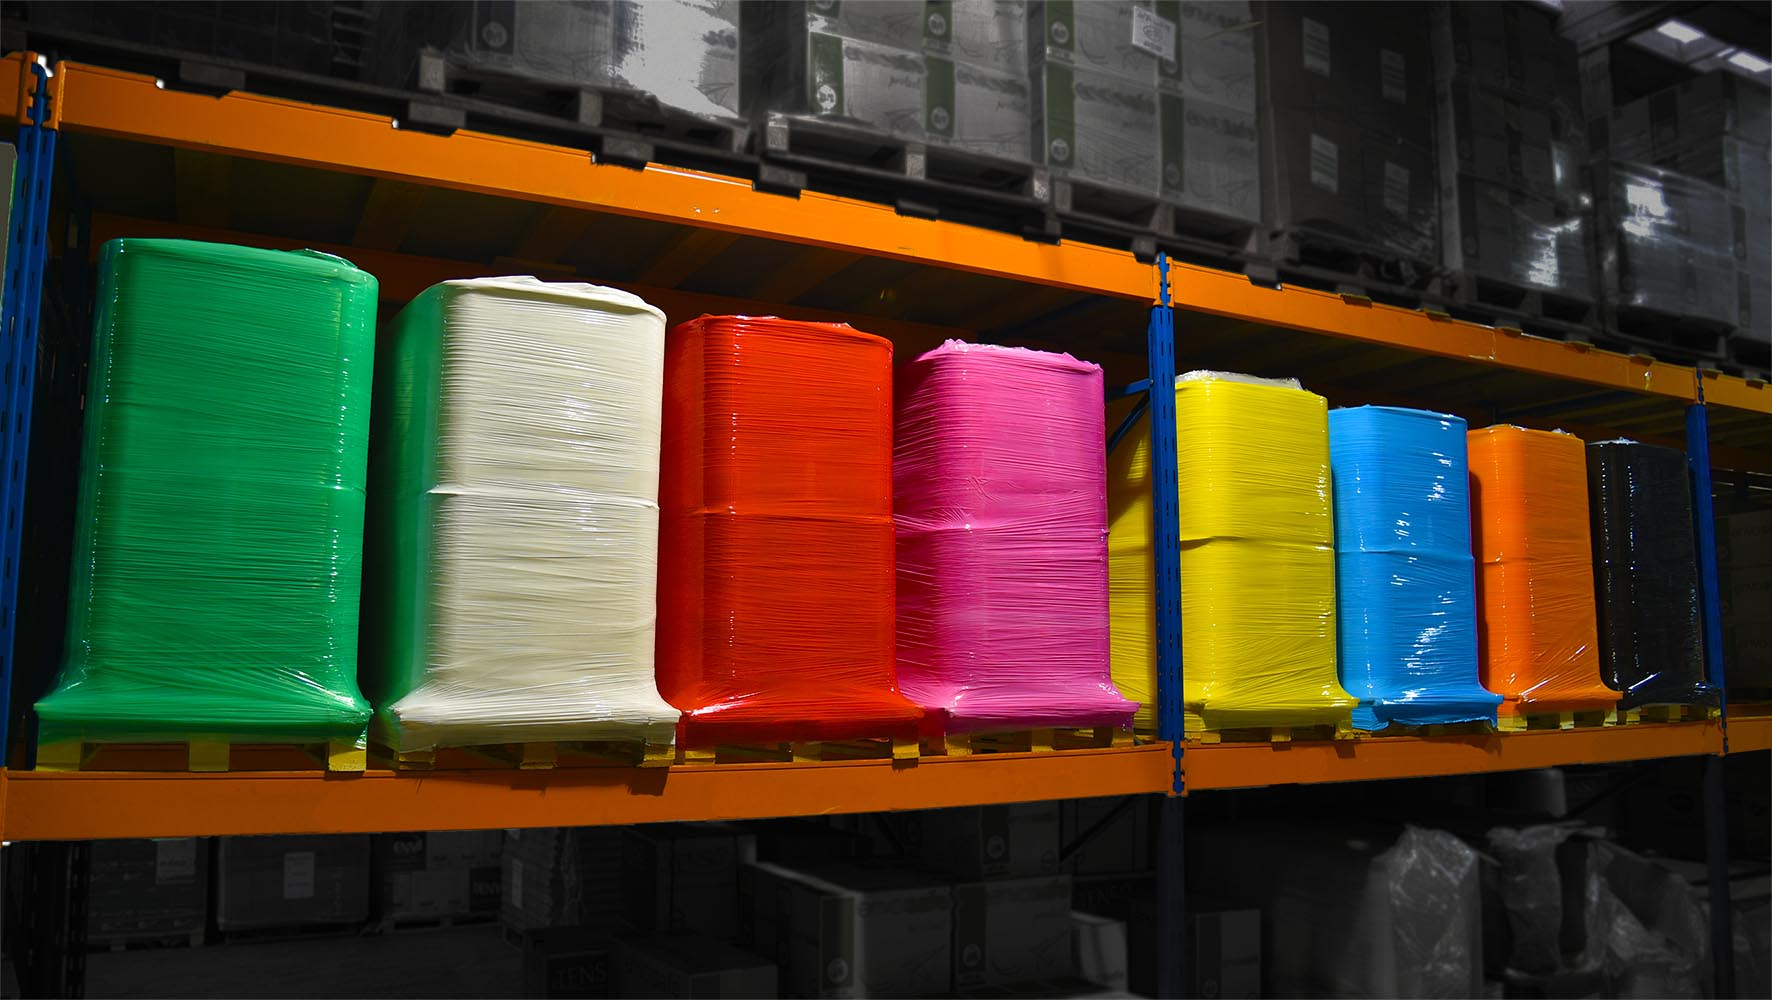 Xtreme 25 Identi-Film Coloured Pallet Wrap in Racking